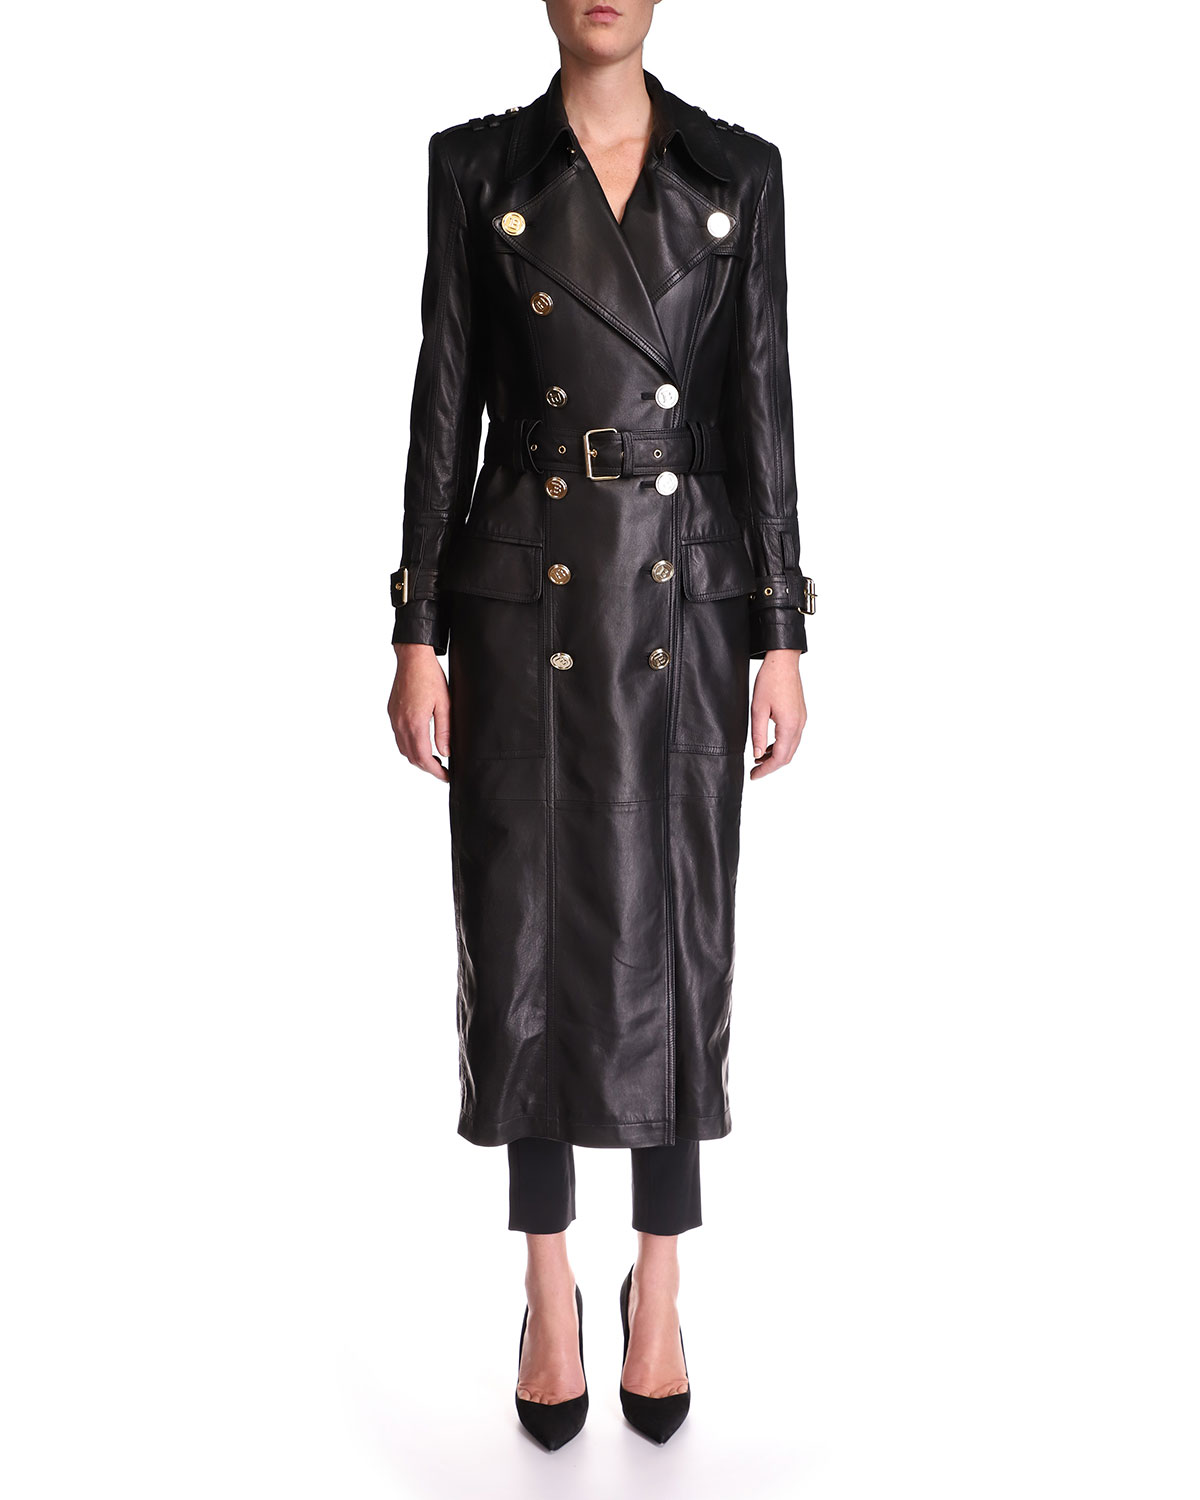 Balmain Leathers DOUBLE-BREASTED LEATHER BELTED TRENCH COAT